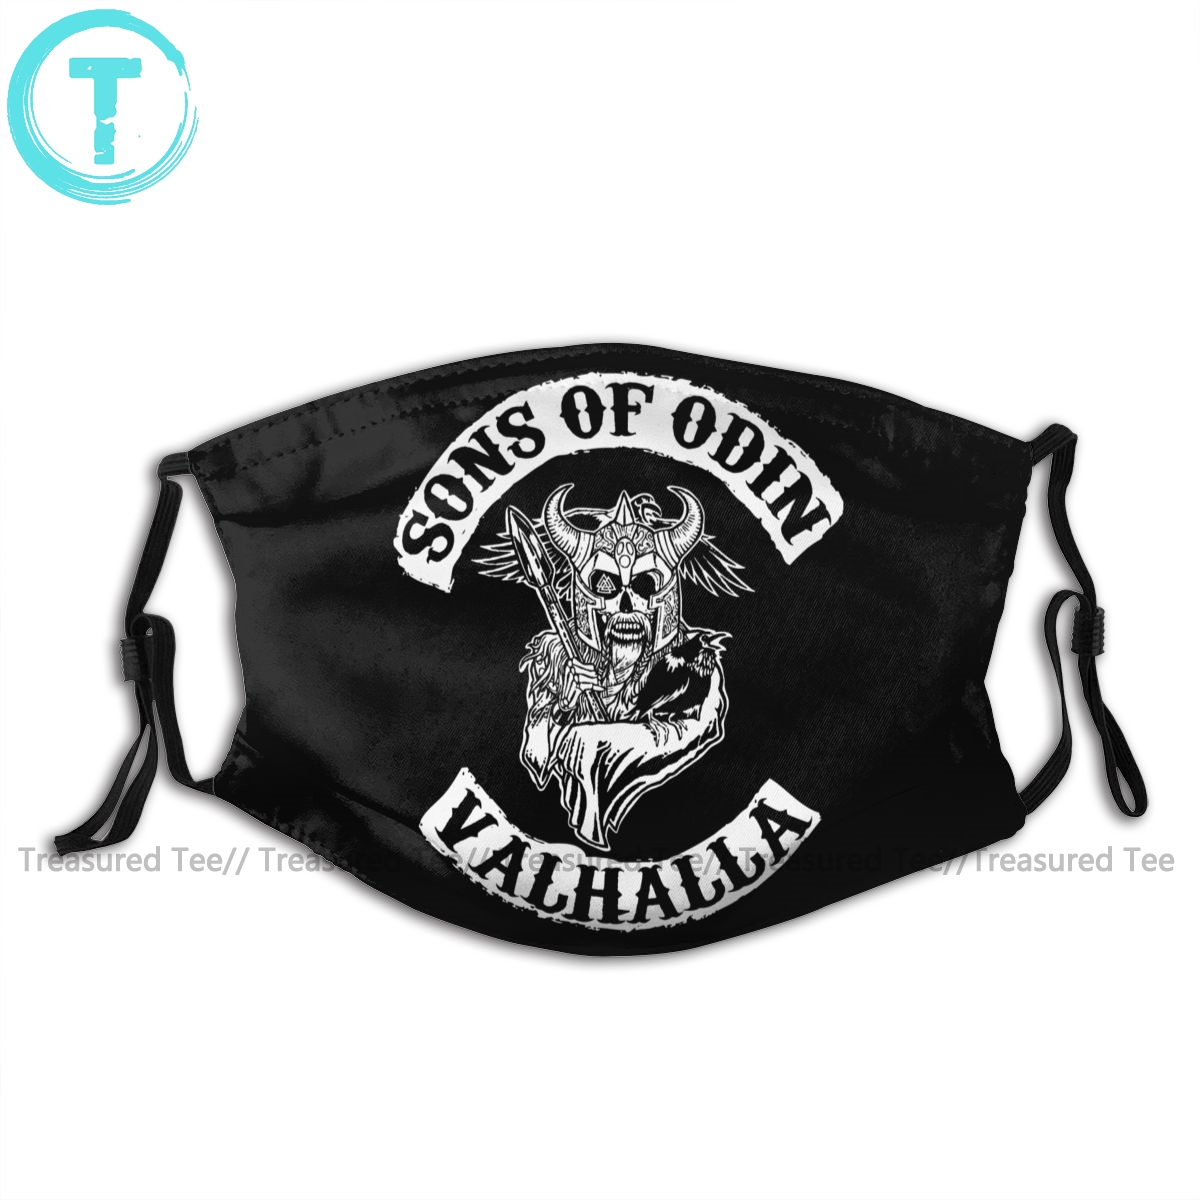 Sons Of Anarchy Mouth Face Mask Sons Of Odin Valhalla Chapter Facial Mask Cool Fashion With 2 Filters For Adult